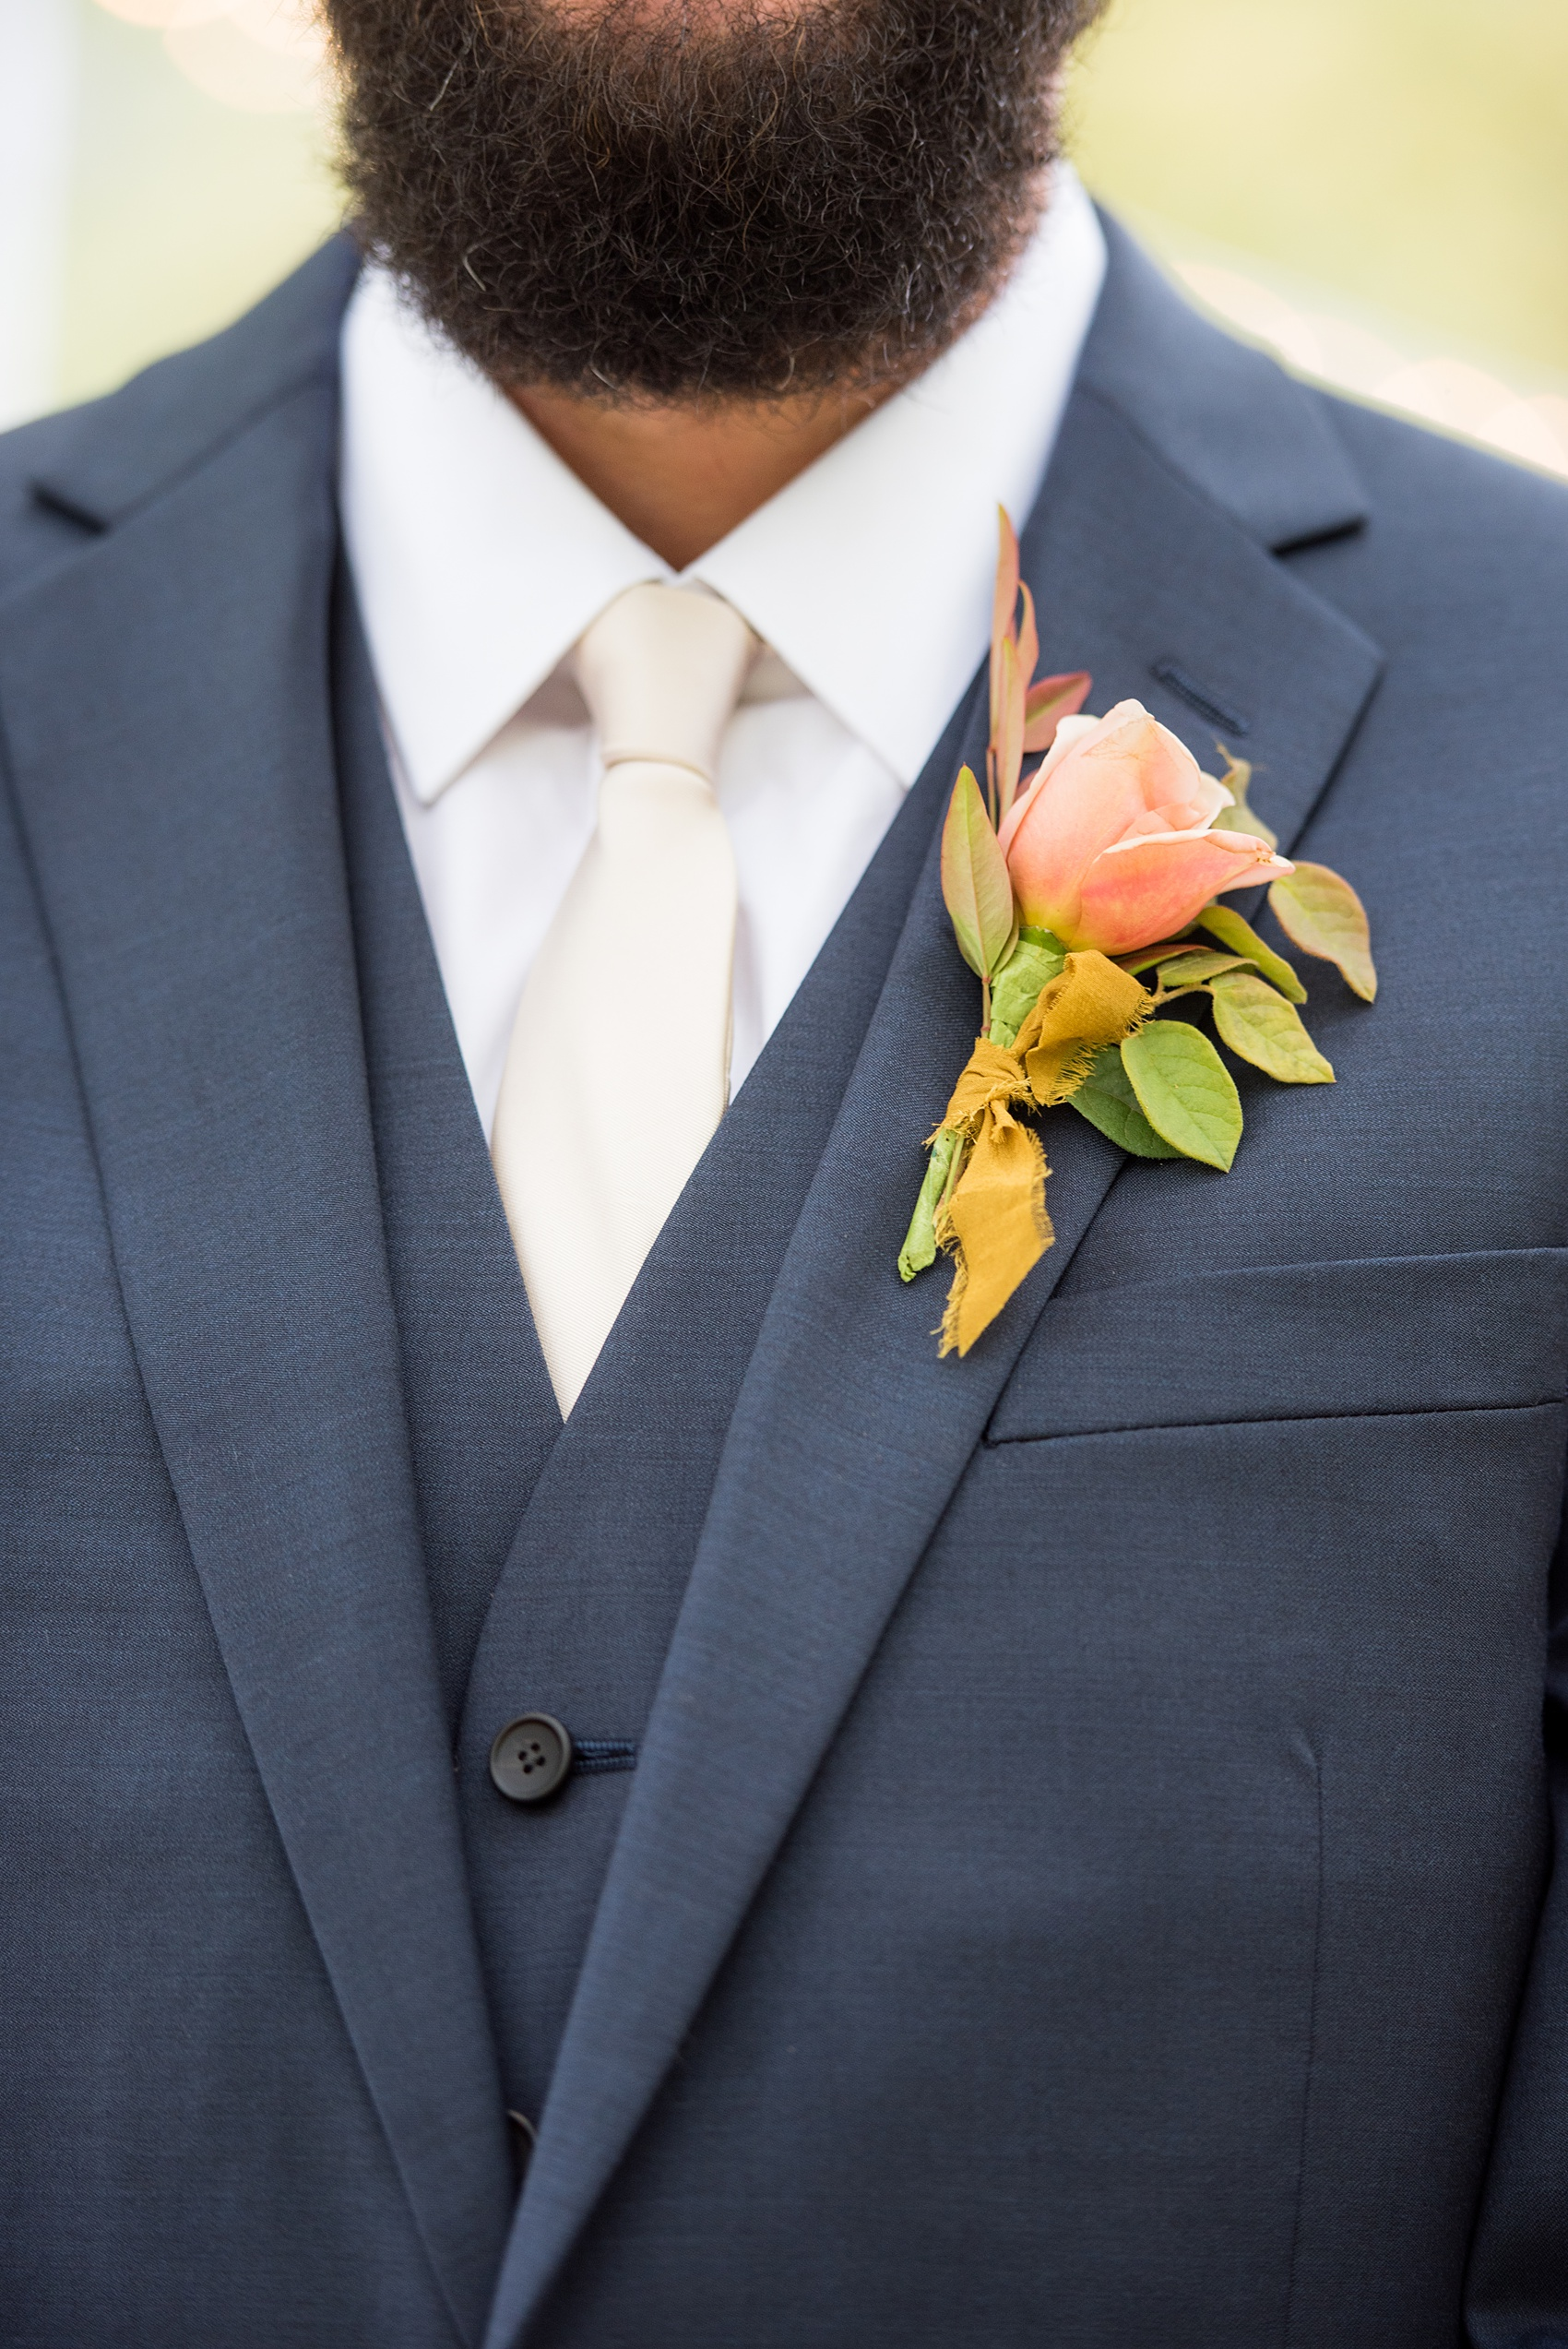 Mikkel Paige Photography photos from a wedding at Leslie-Alford Mims House in North Carolina. Detail picture of the groom's double breasted navy linen suit and fall boutonniere.